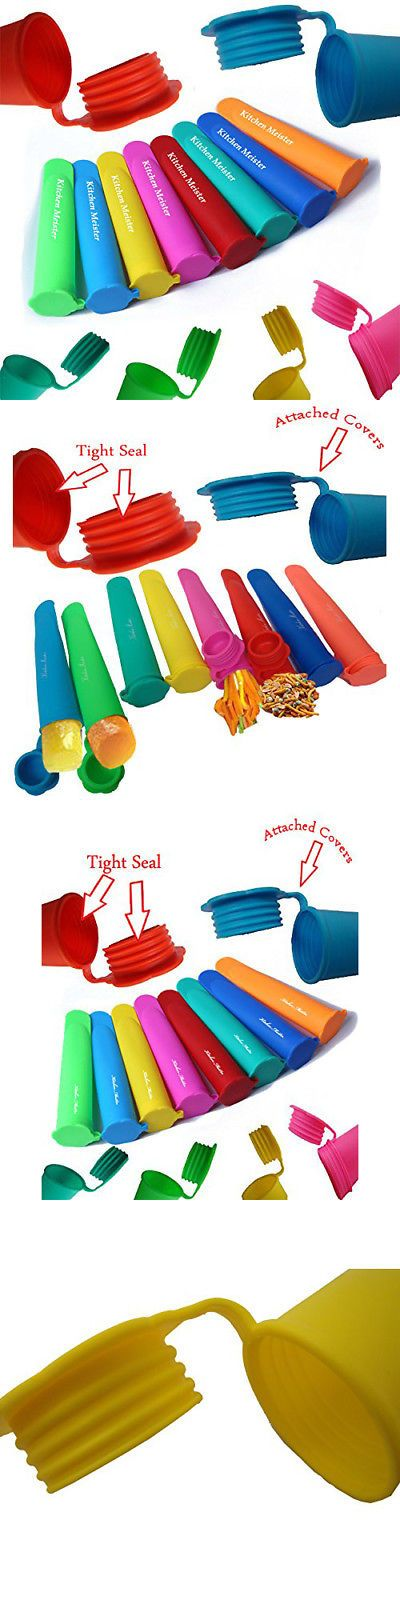 Ice Pop Molds 178056: Silicone Ice Pop Maker Tube Molds, Popsicle Molds, Set Of 10, Assorted Sale -> BUY IT NOW ONLY: $32.38 on eBay!